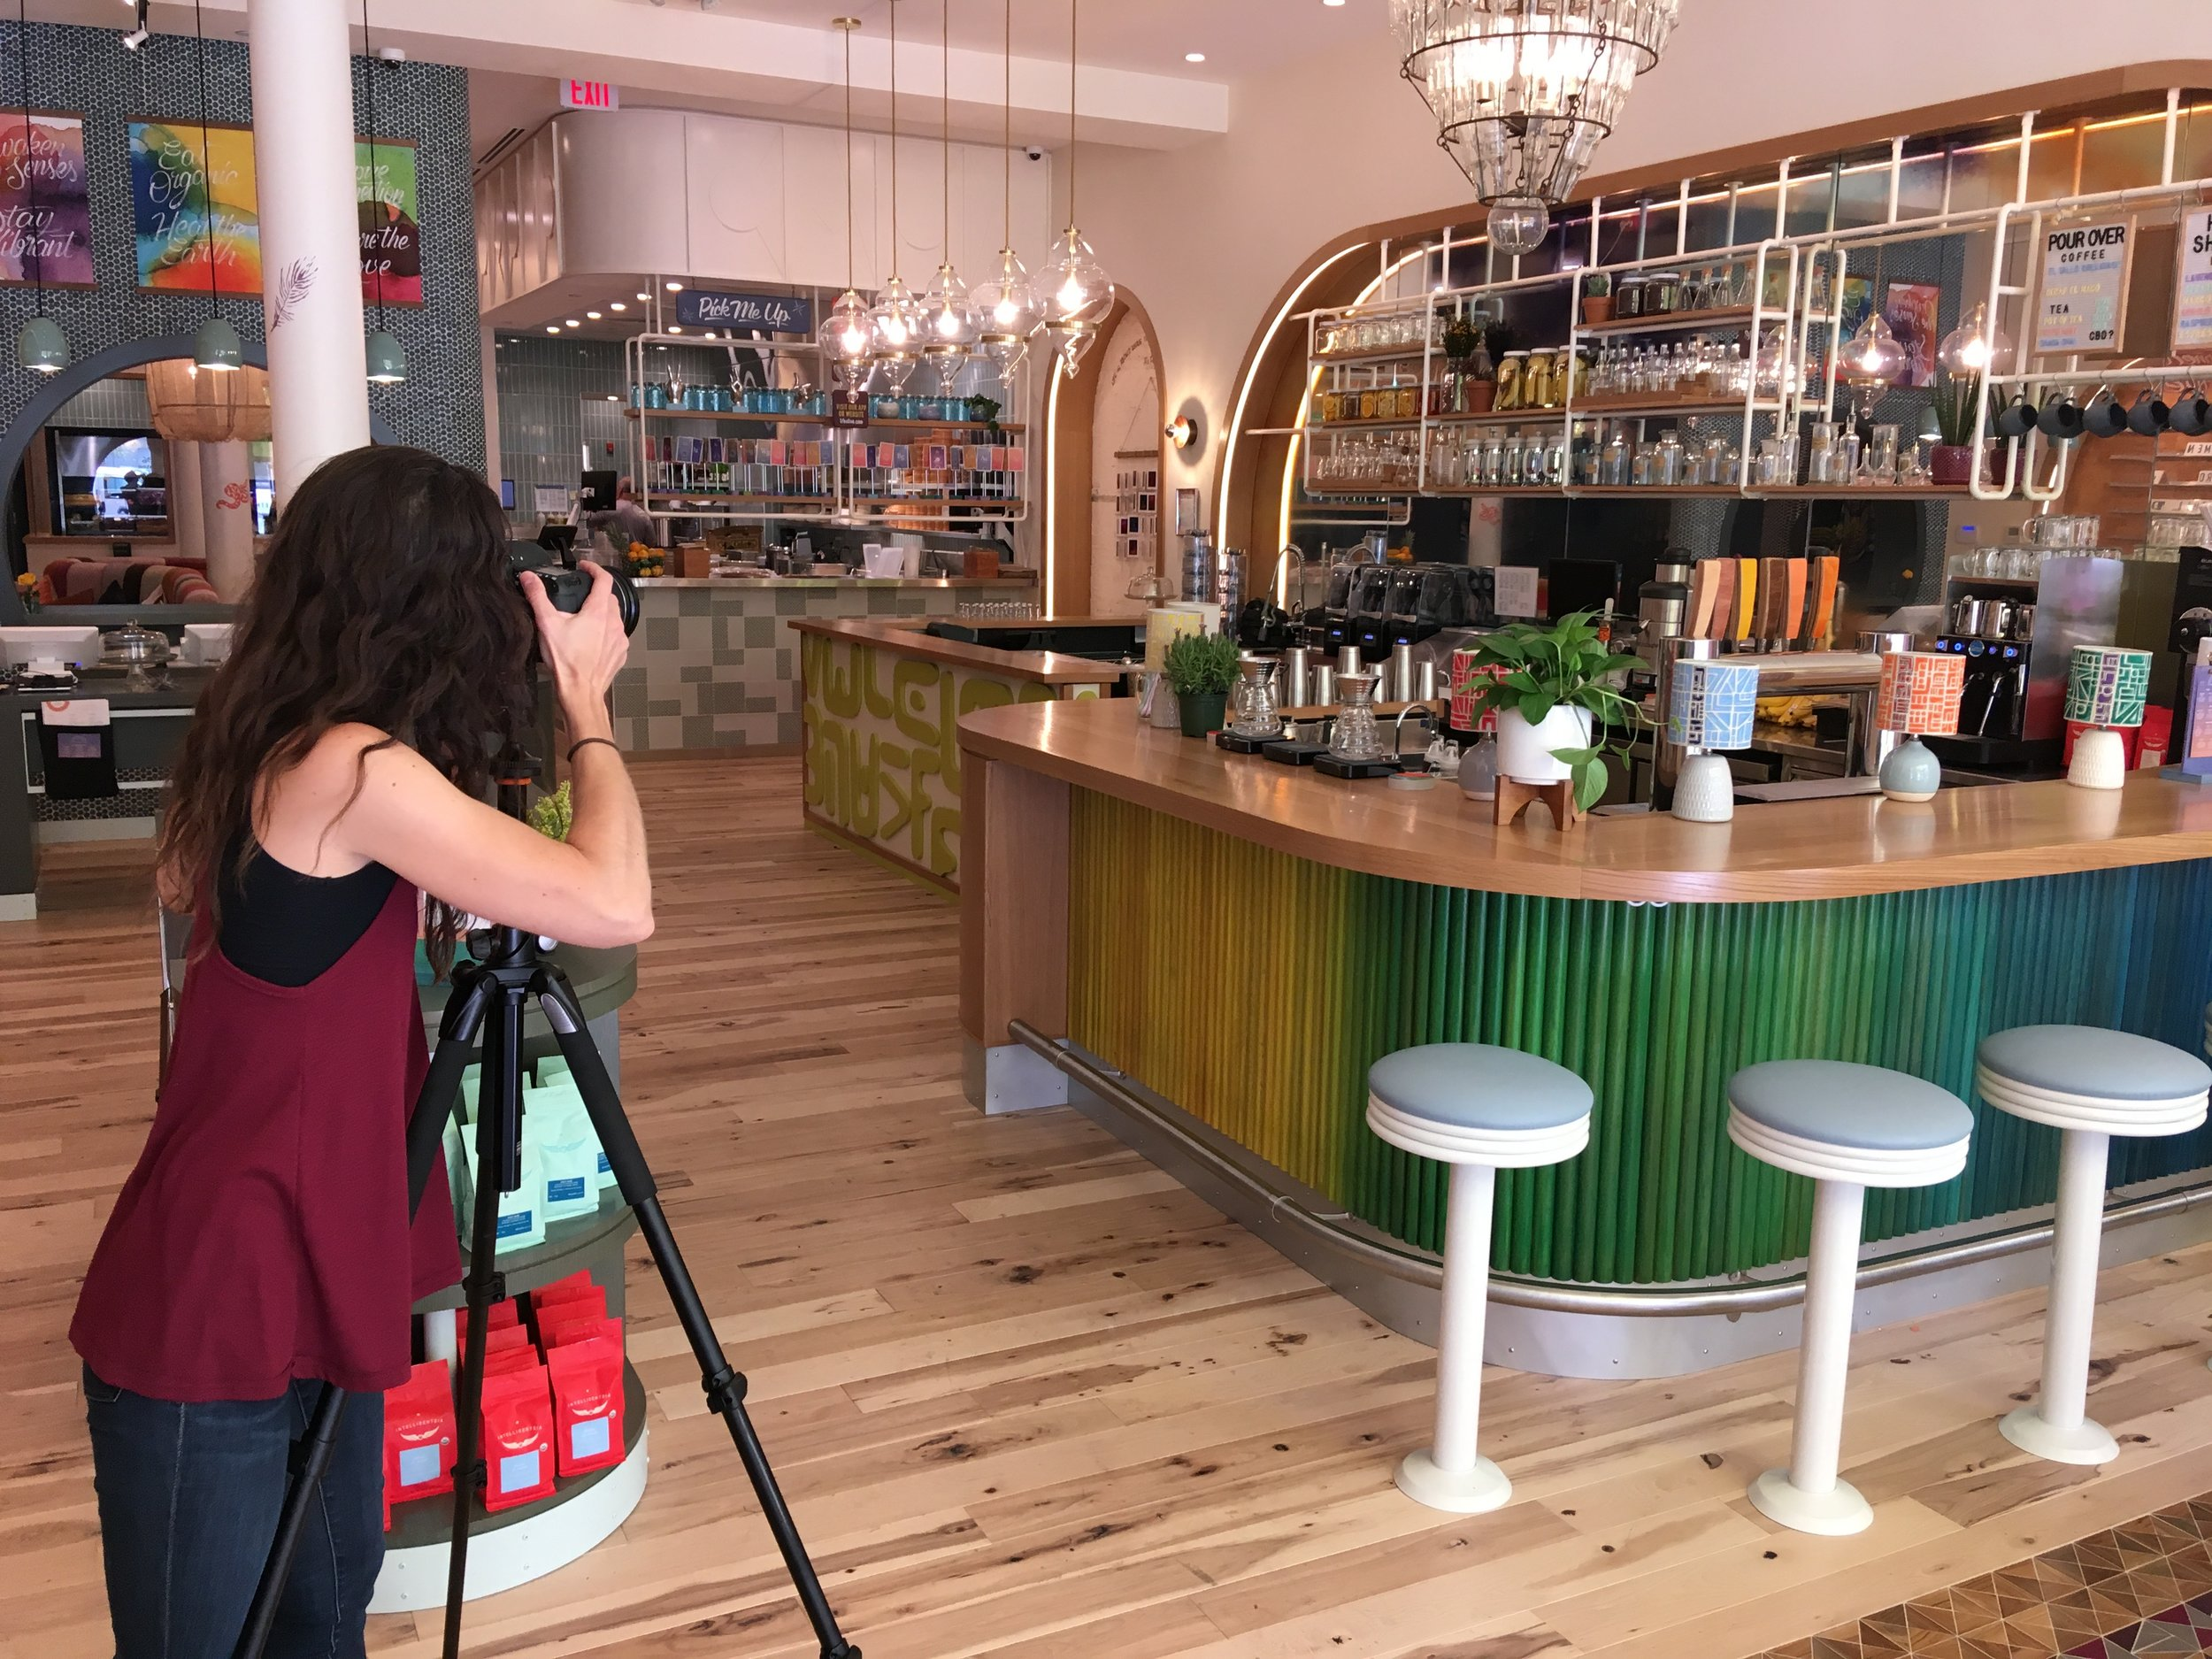 2019.06.10_Eater Boston shoot at Life Alive Back Bay_Photographer Sarah Storrer_IMG_6943_FAV.jpg